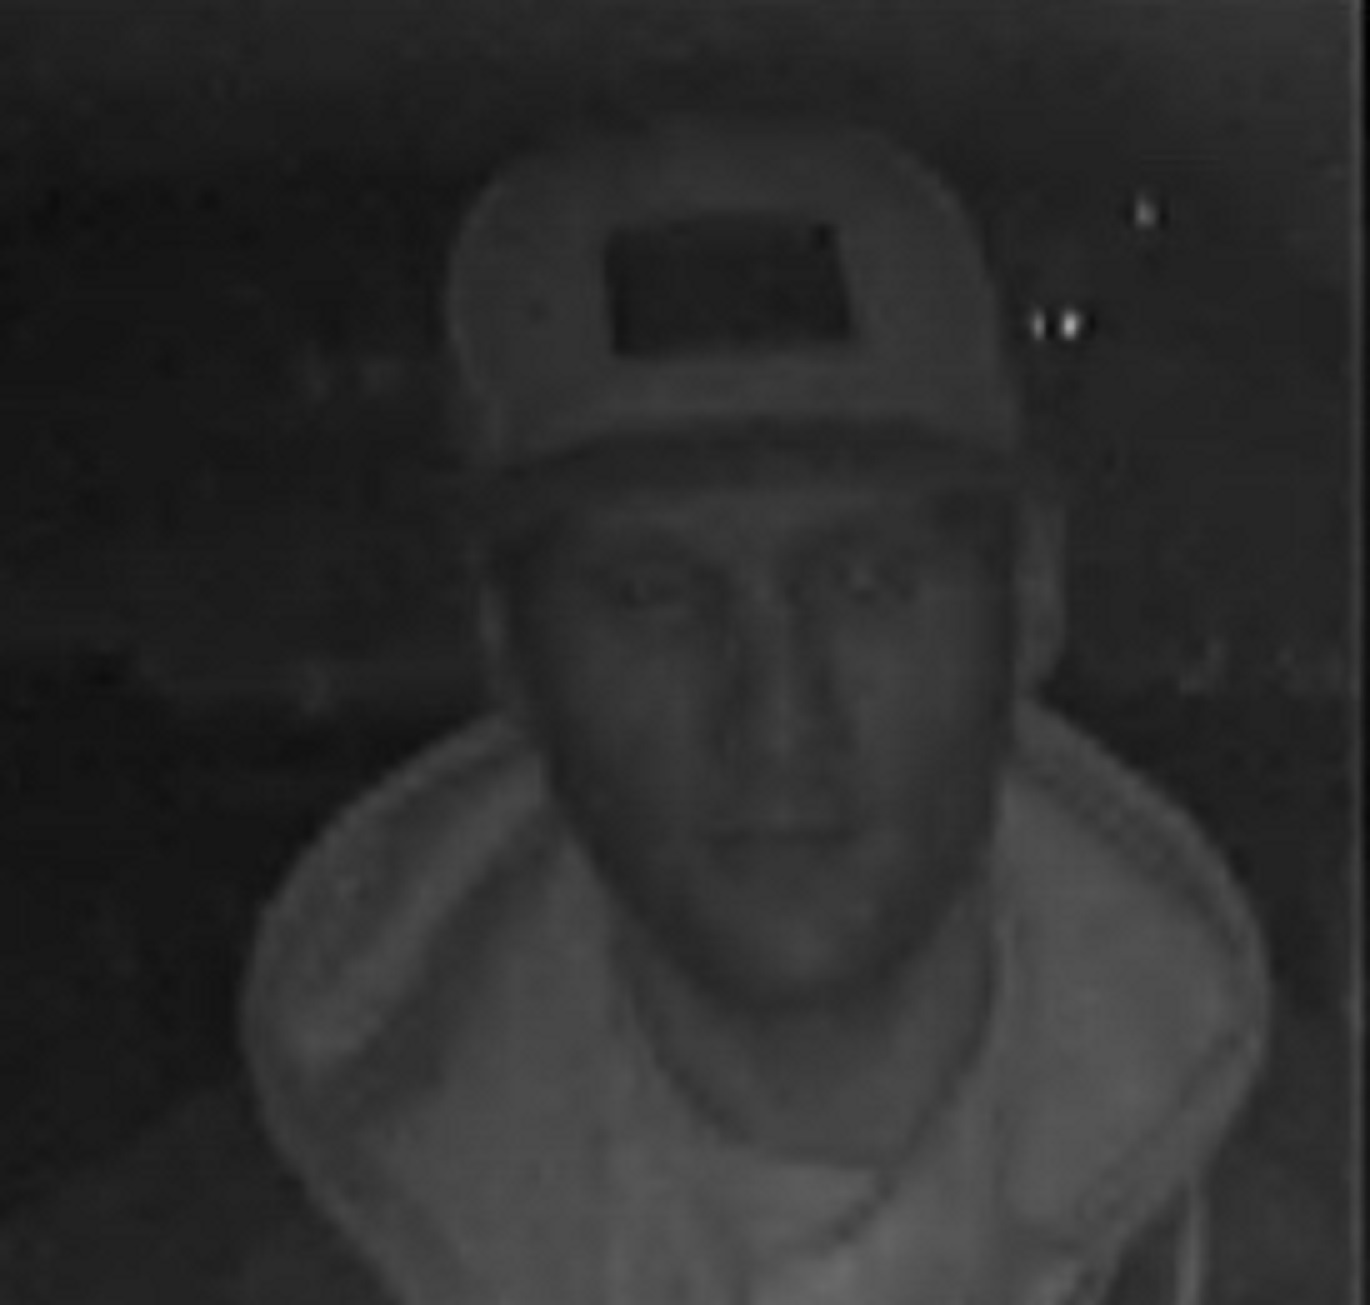 suspect to ID robbery 3